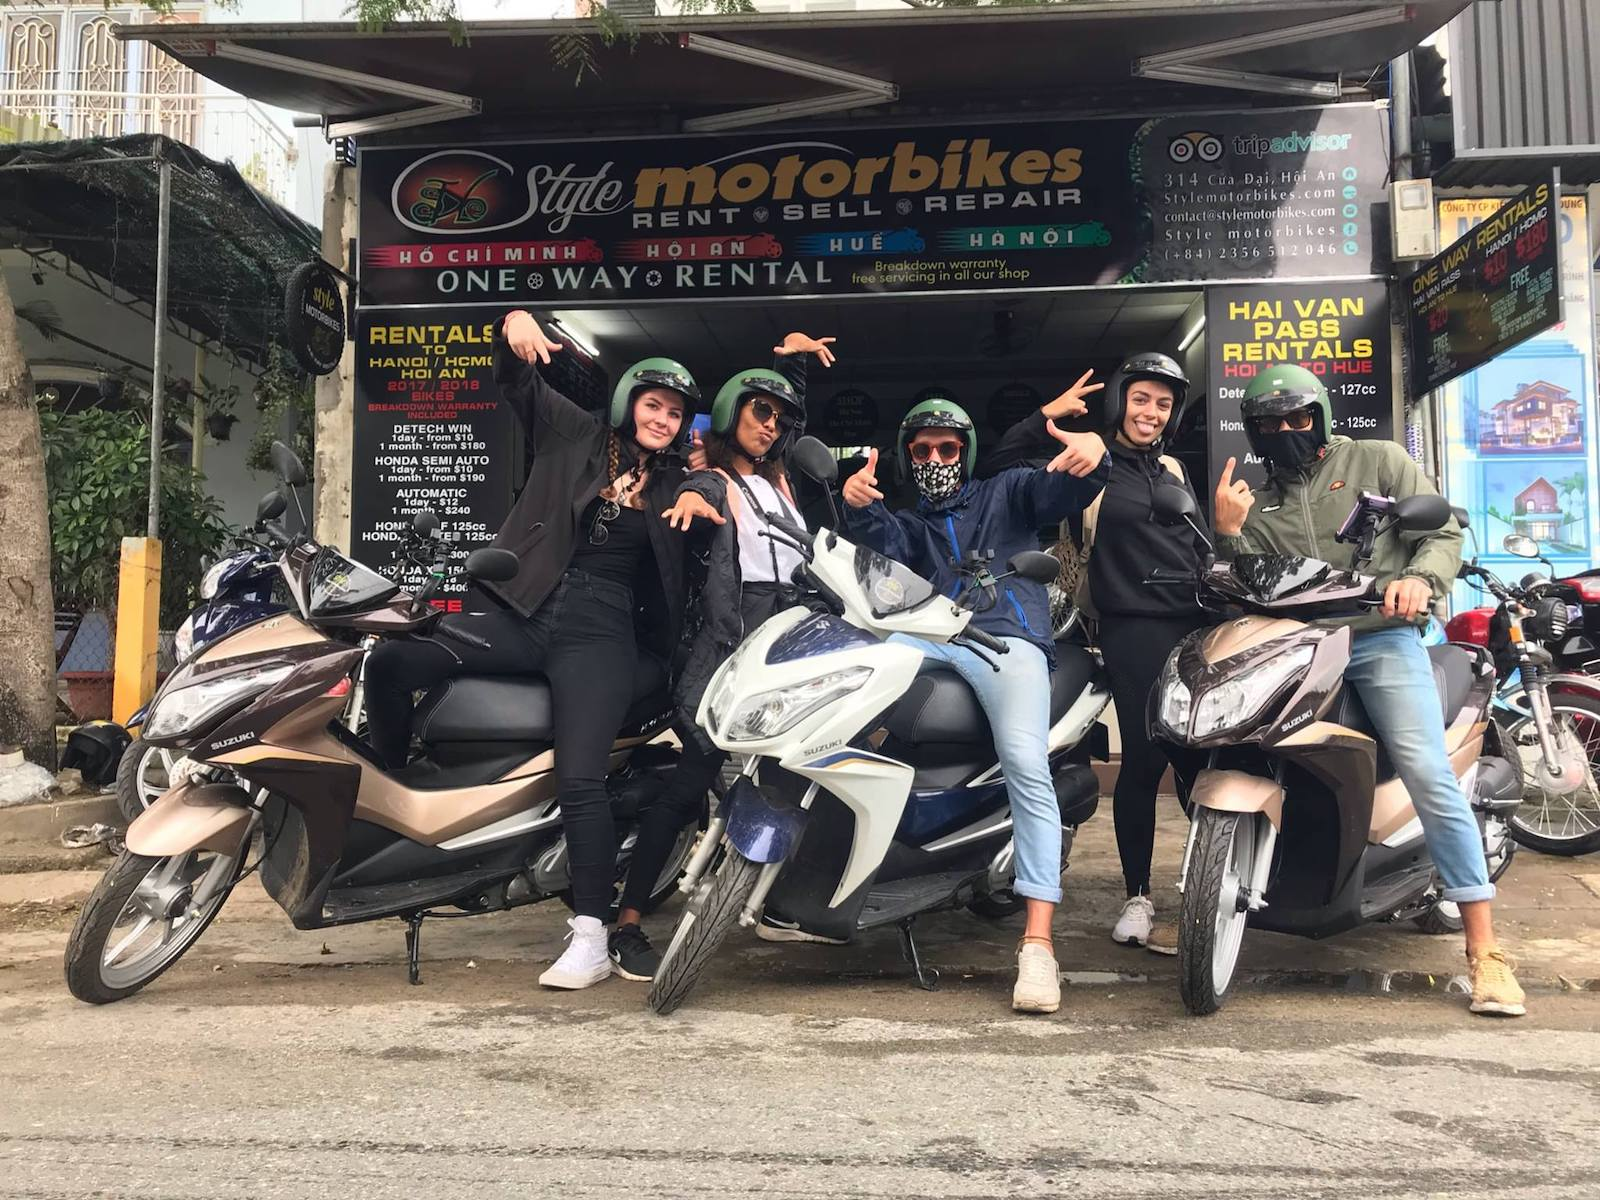 Image of a group of people in front of the Styles Motorbikes store in HCMC, Vietnam